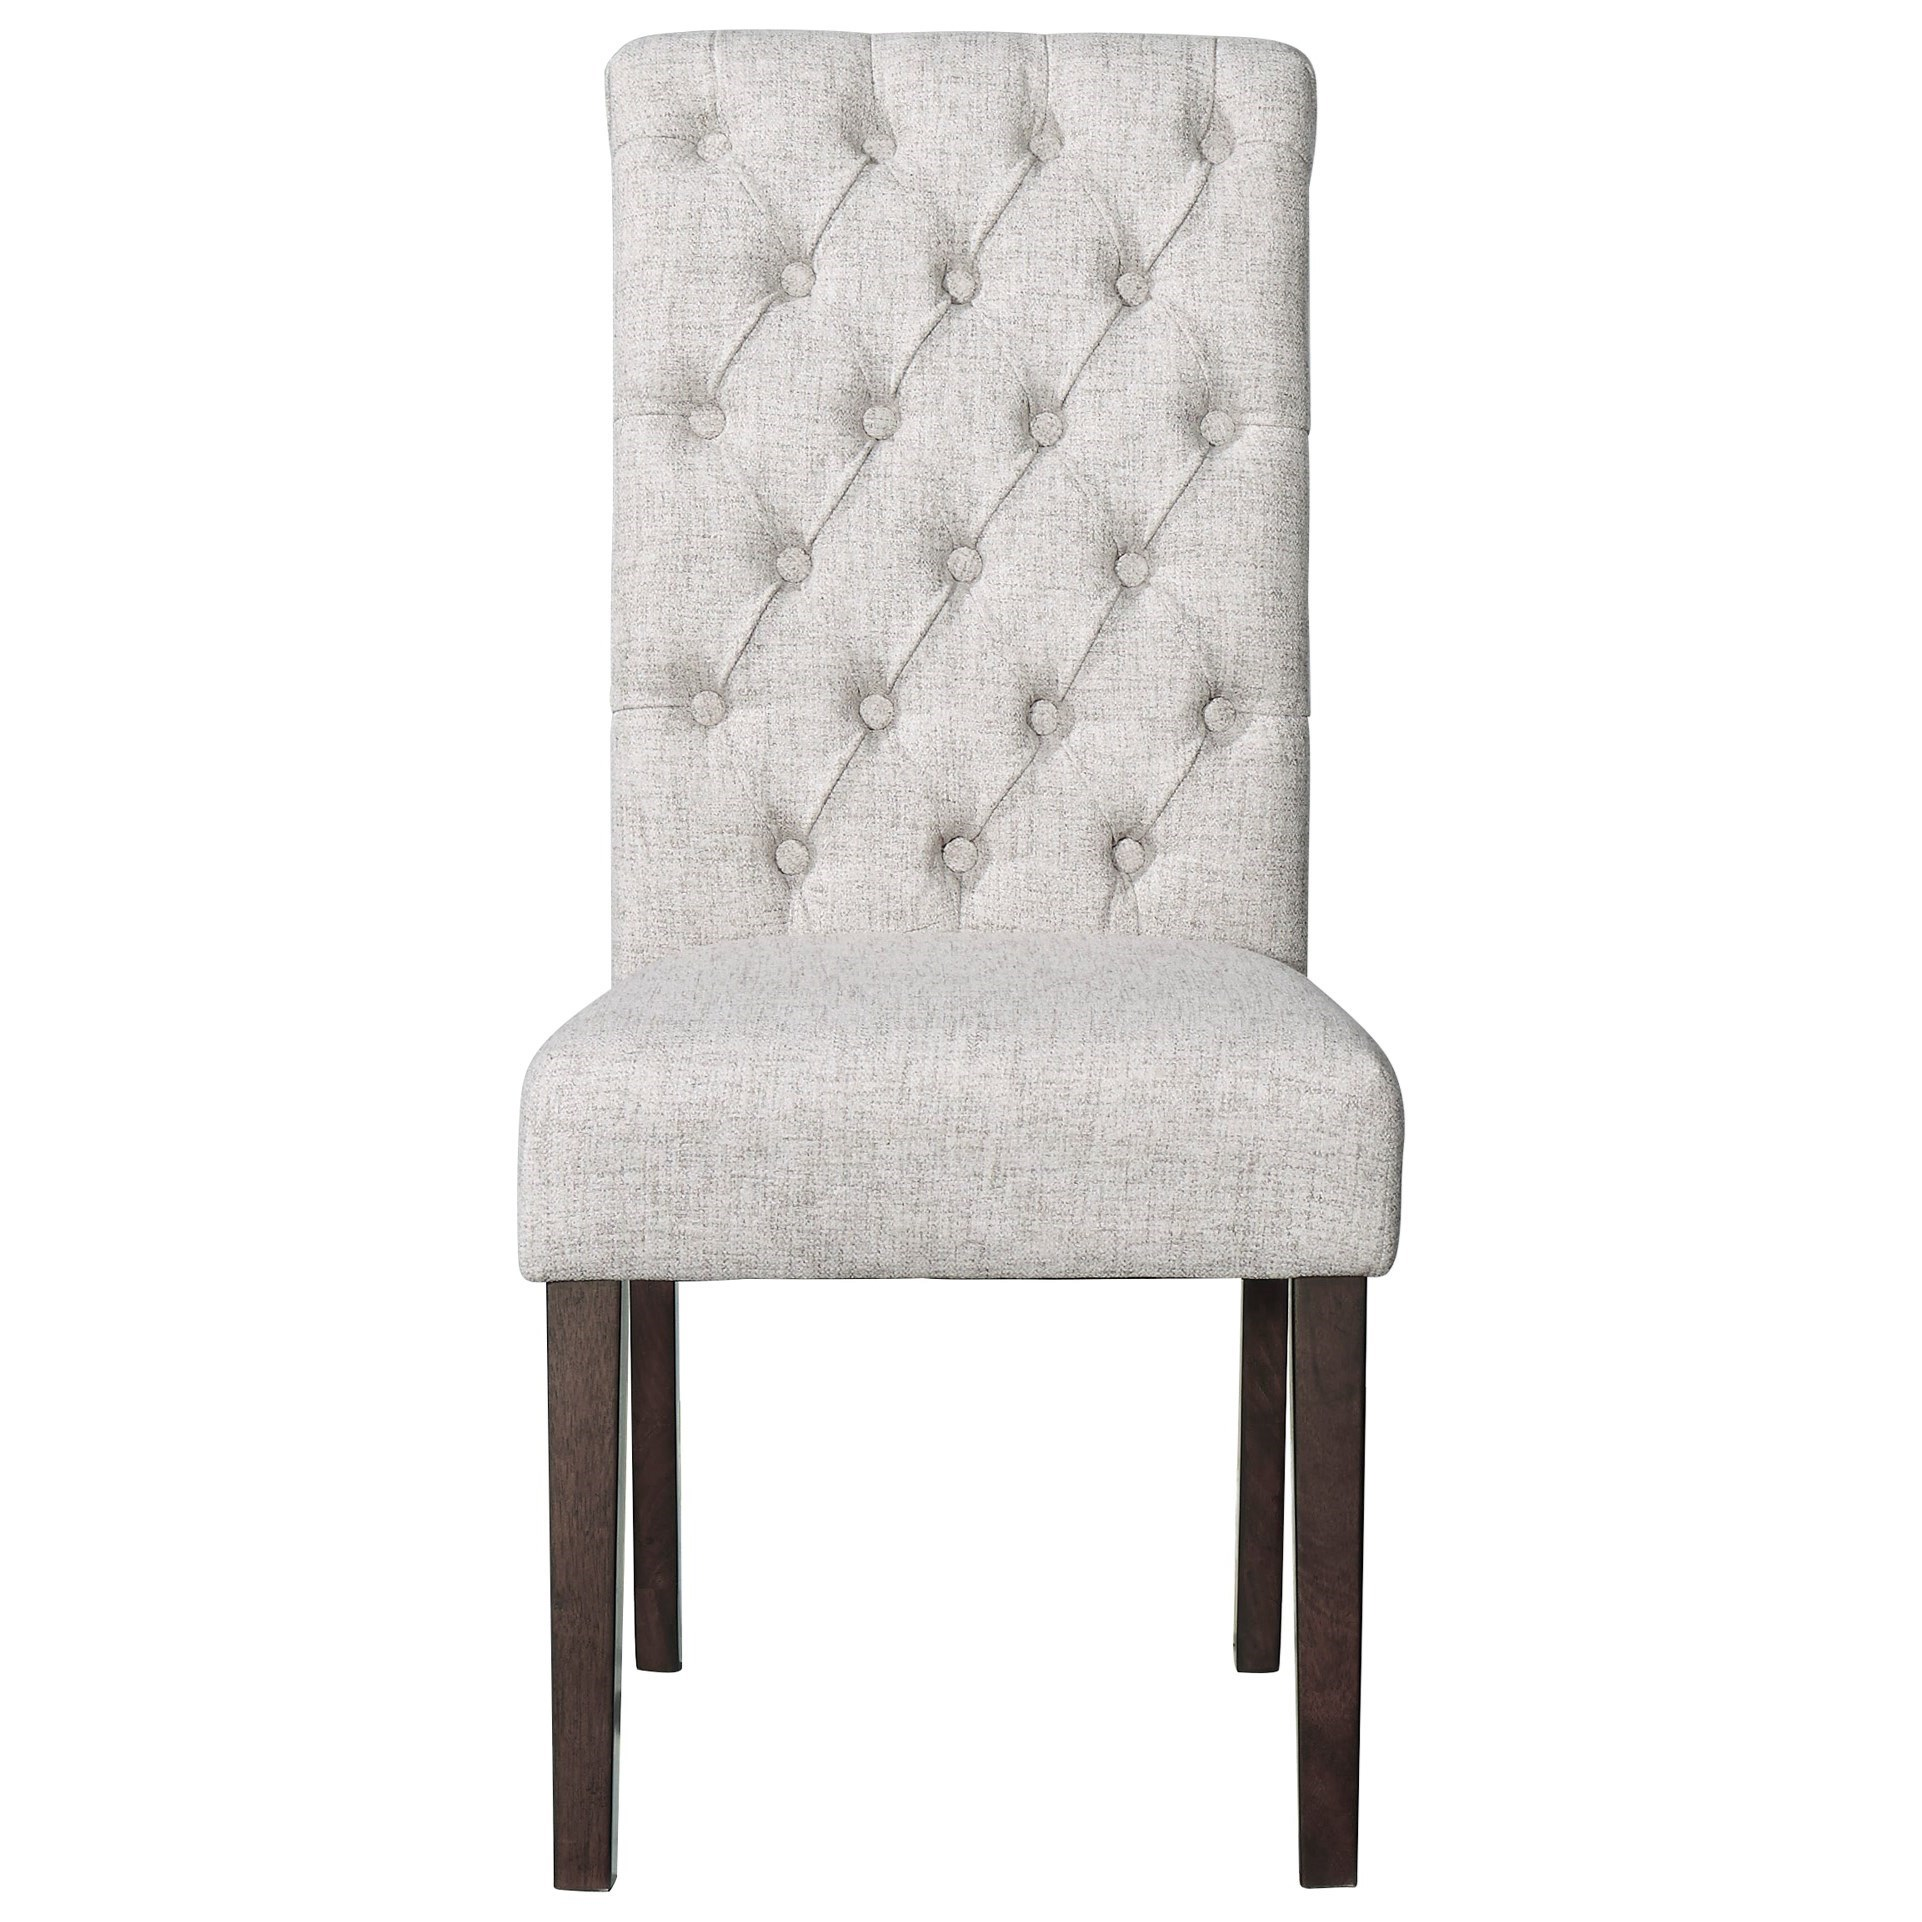 Adinton Dining Upholstered Side Chair by Signature Design by Ashley at Rife's Home Furniture